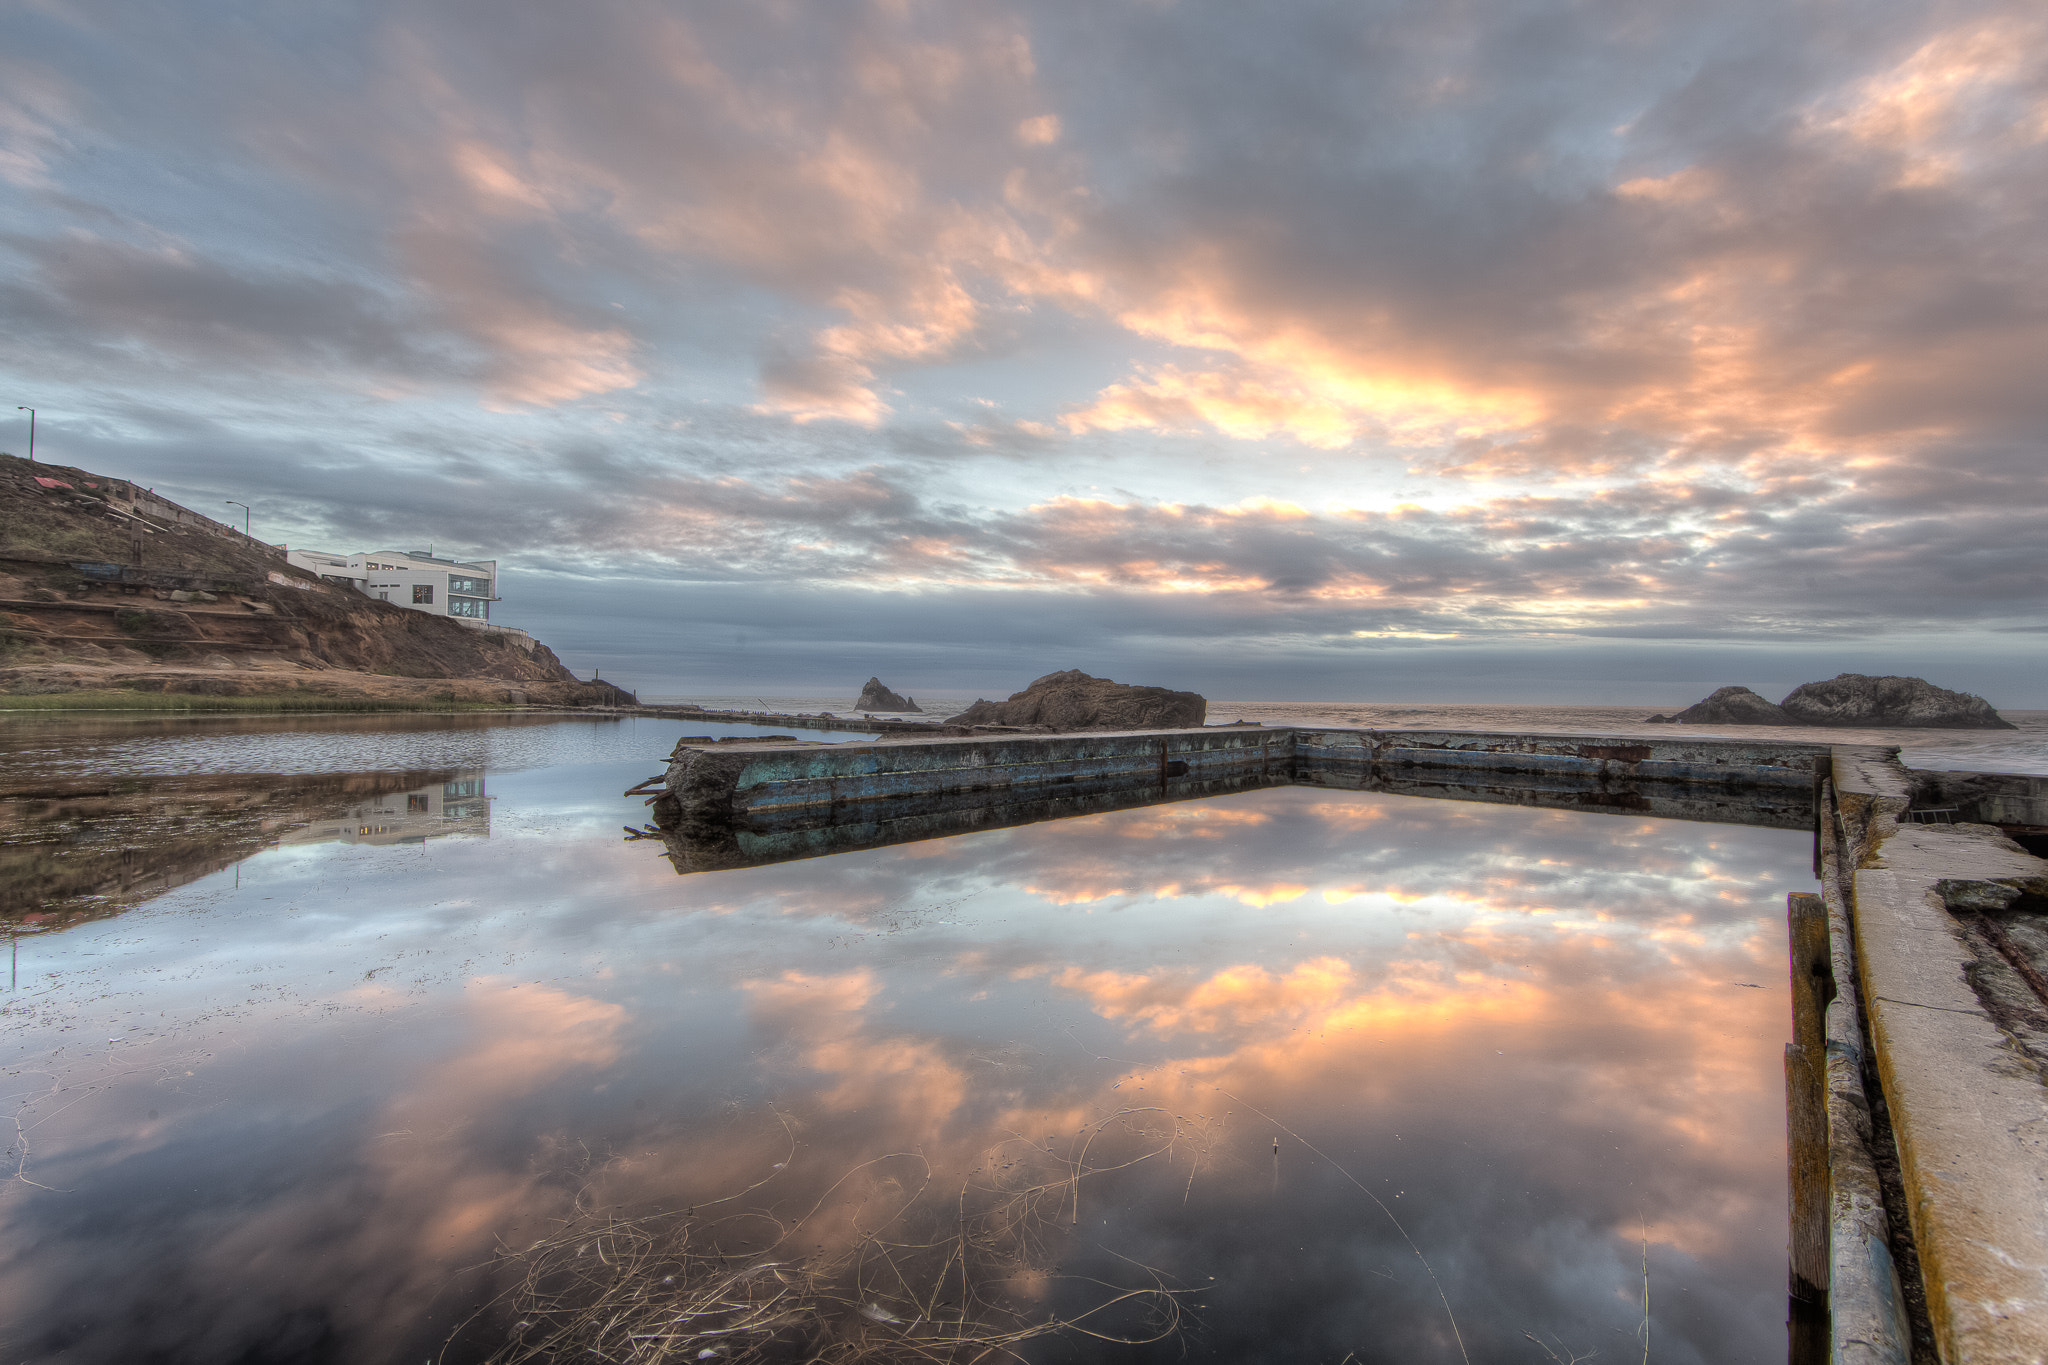 Photograph Where the giants roam by Chris Chabot on 500px